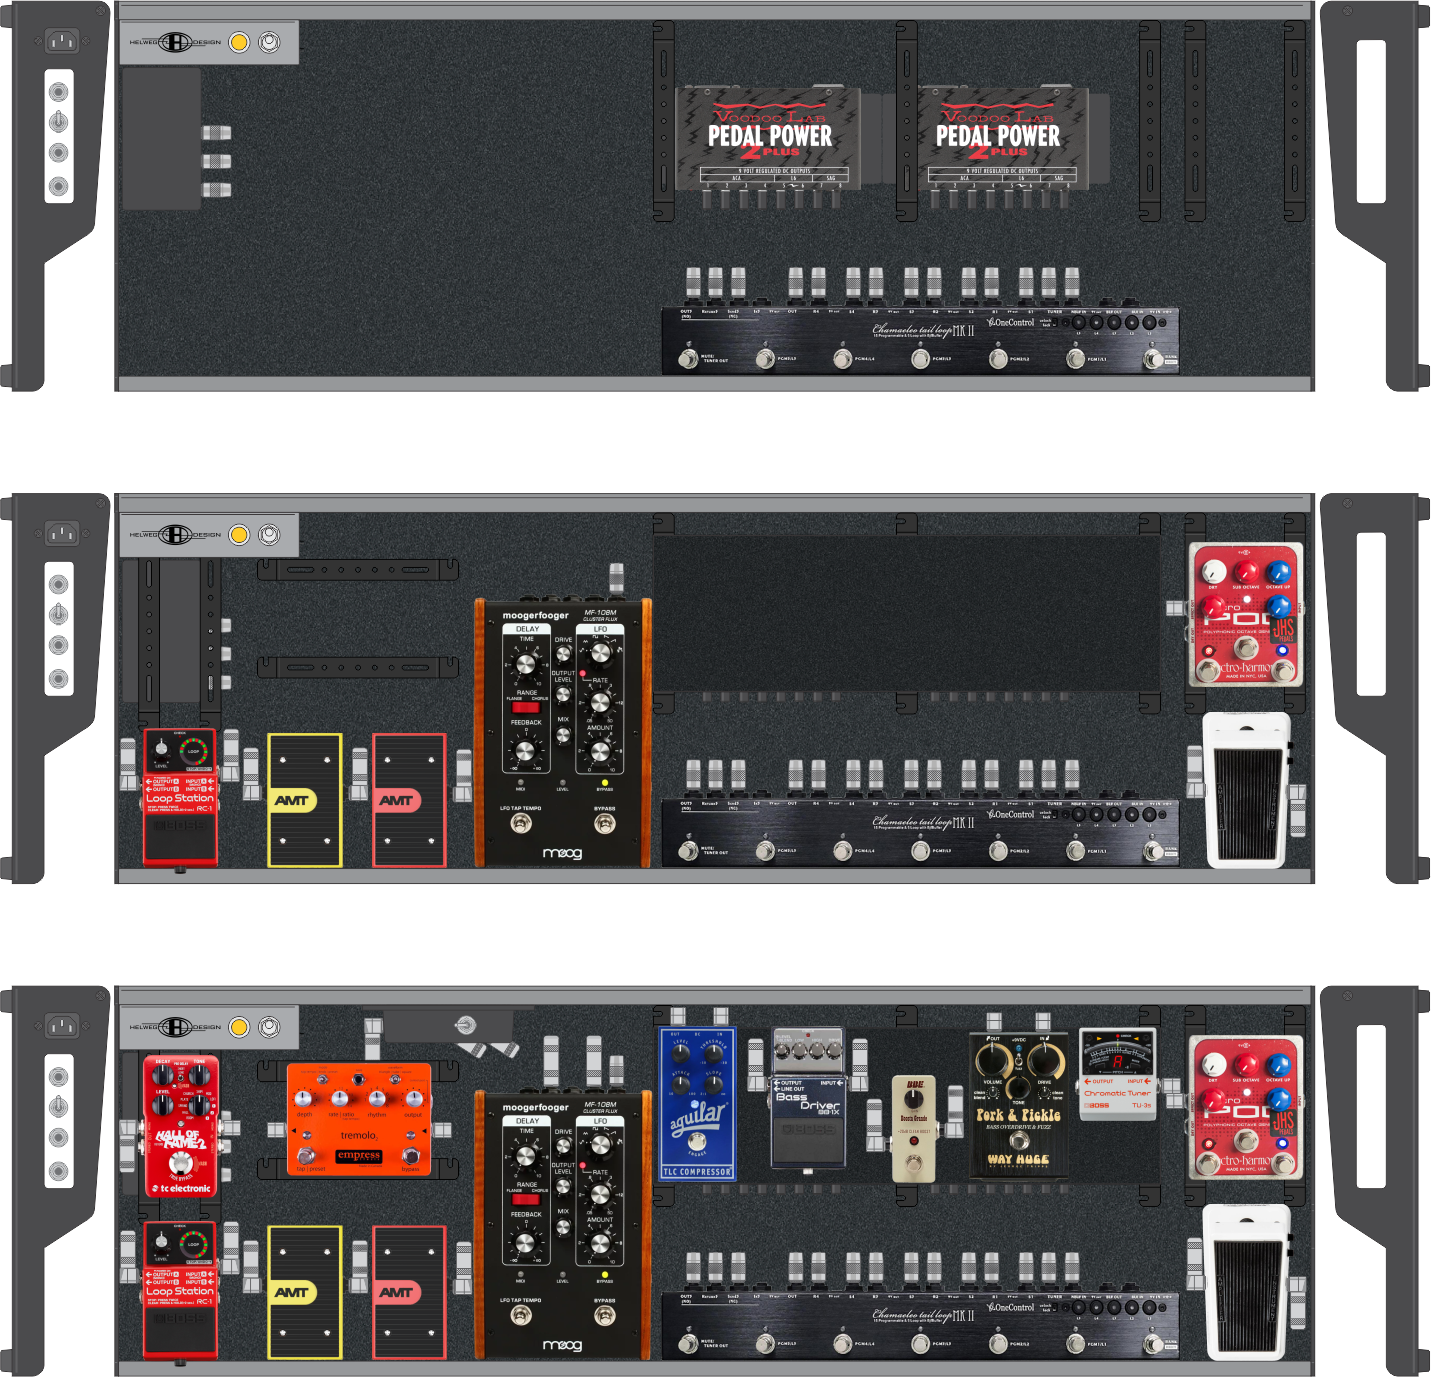 Custom Bass Pedalboard_final layout mock-up